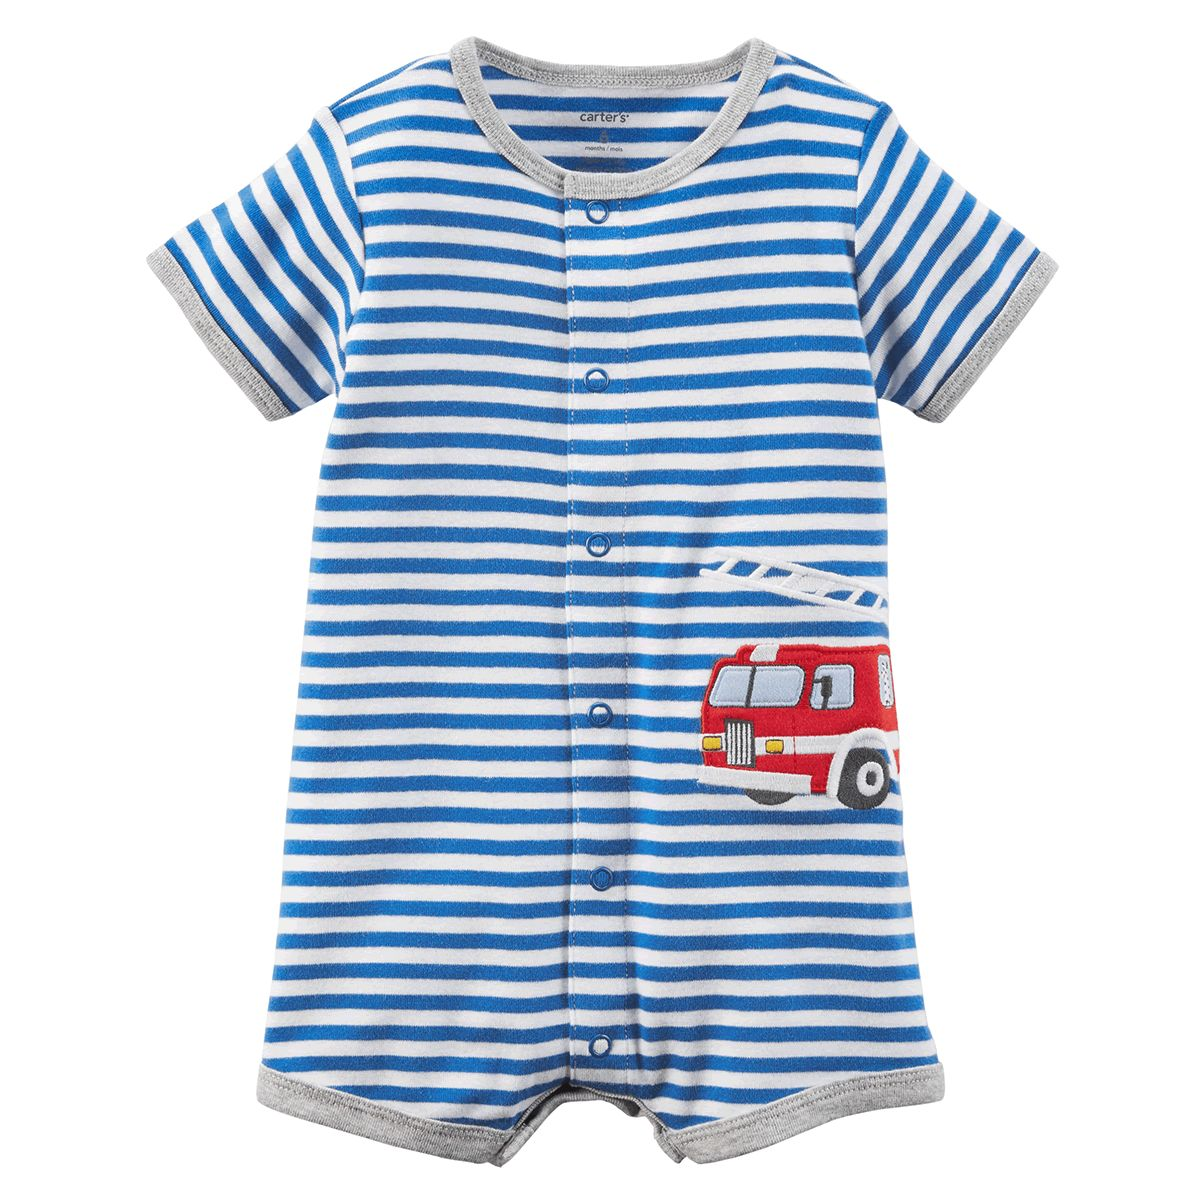 0846696d2 Carter s Baby Clothes - Macy s